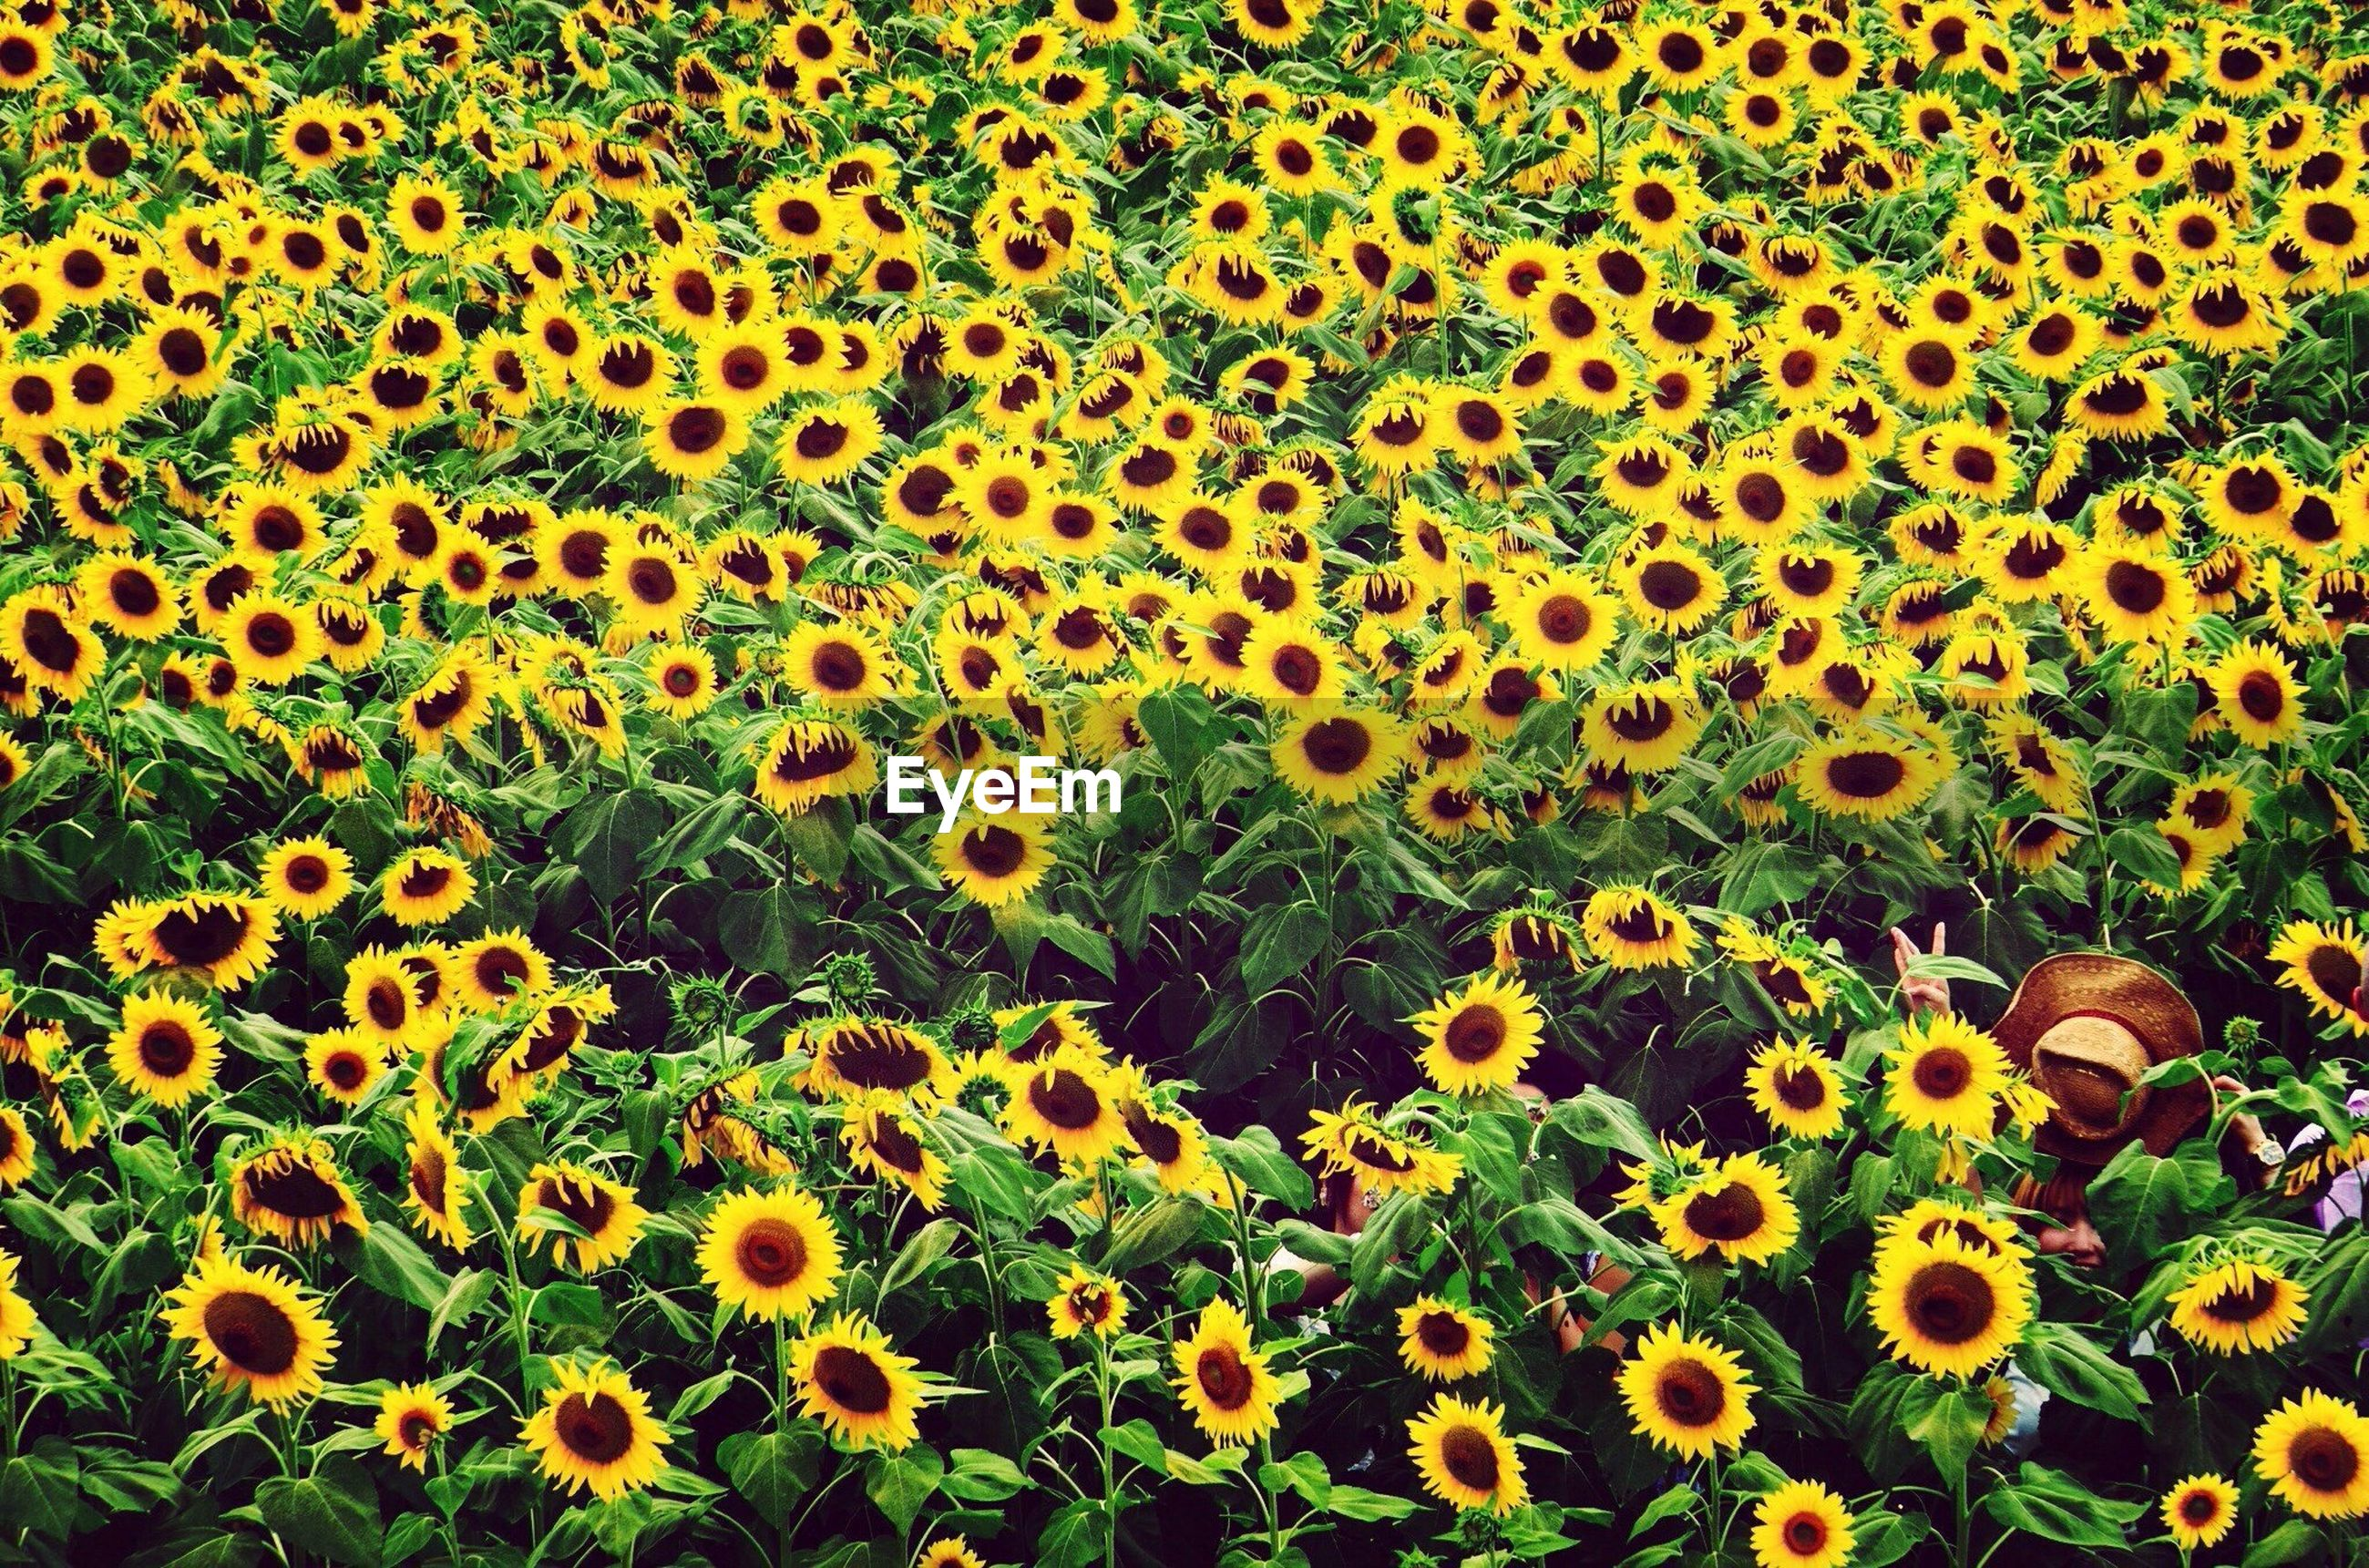 flower, yellow, freshness, growth, fragility, beauty in nature, petal, flower head, blooming, nature, full frame, plant, field, high angle view, backgrounds, abundance, in bloom, blossom, sunflower, outdoors